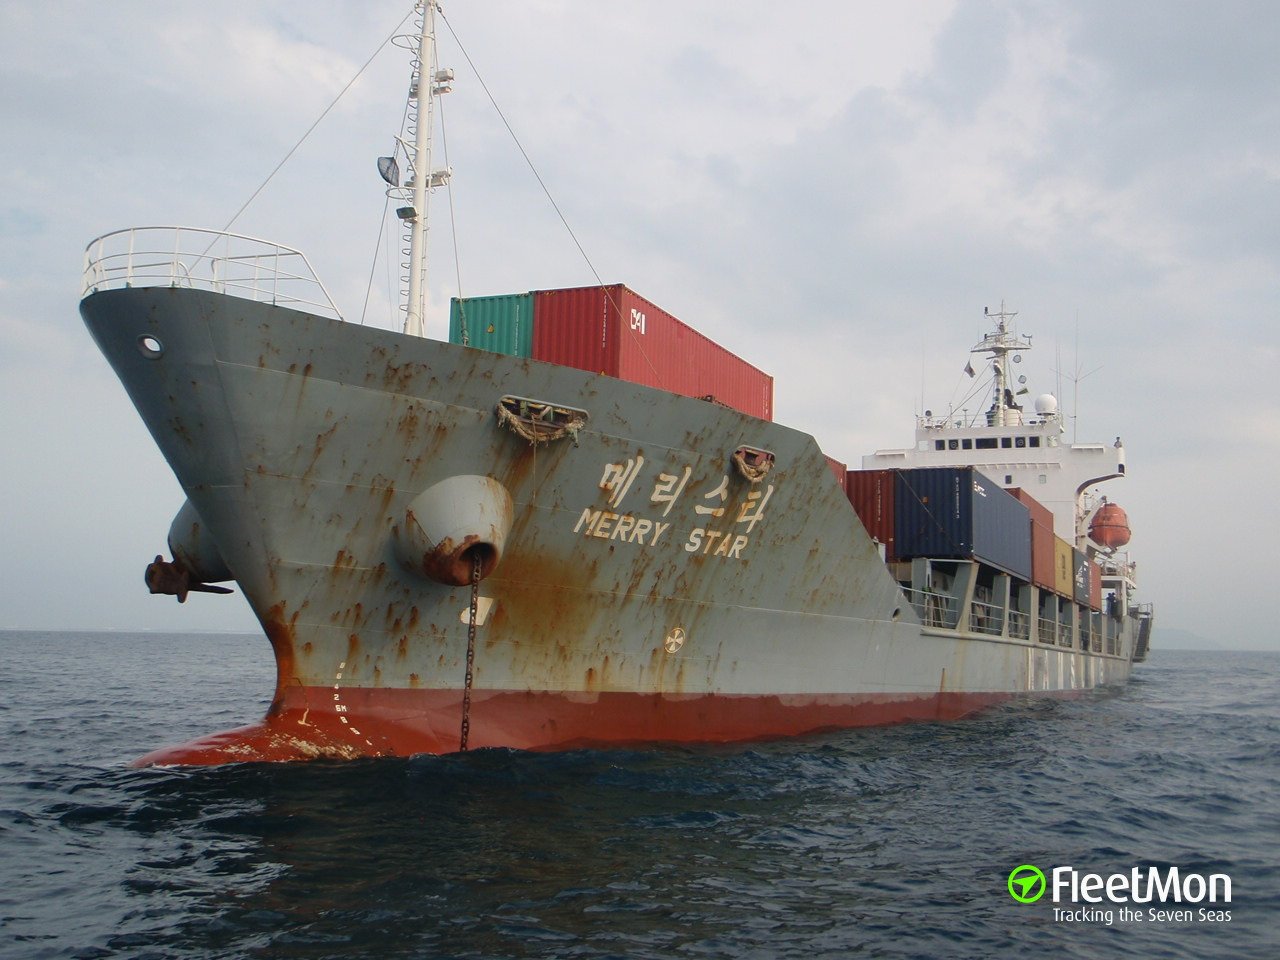 Container ship Merry Star still aground, Japan